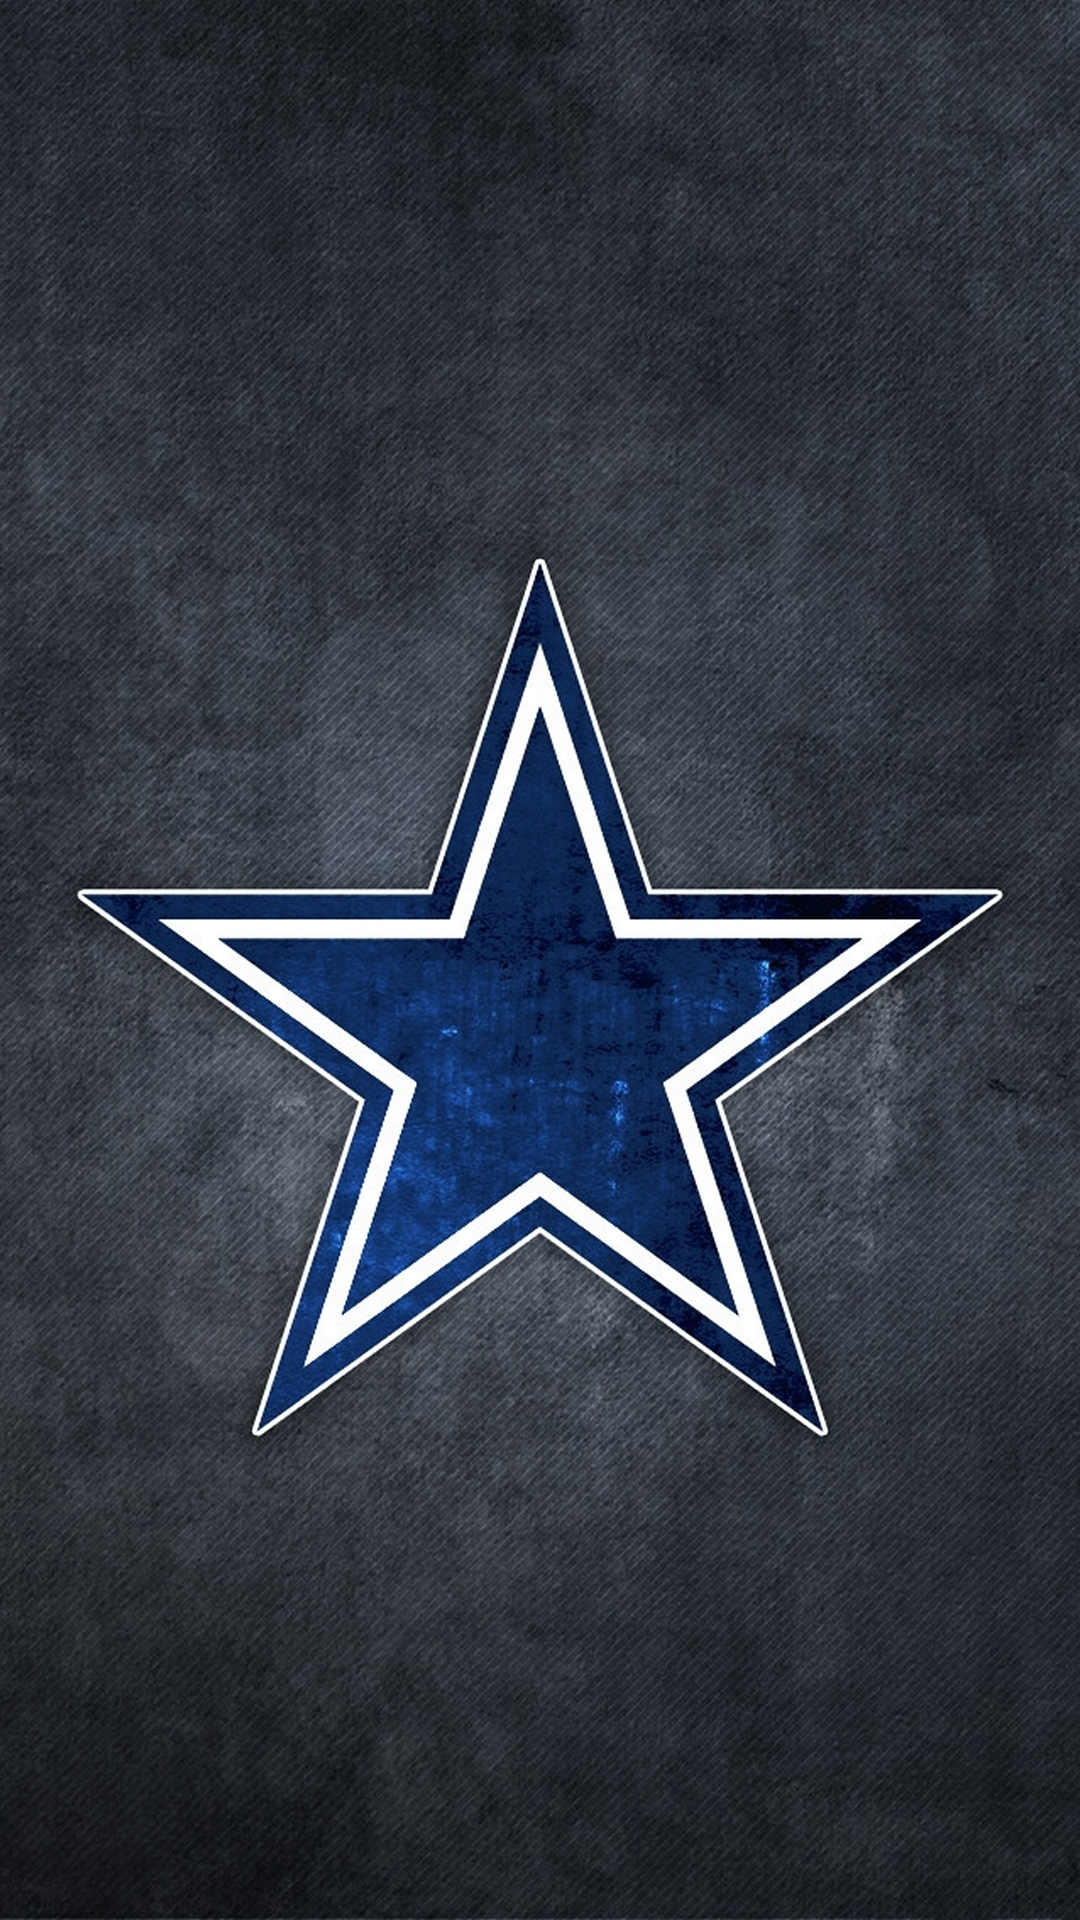 1080x1920 Dallas Cowboys Iphone Wallpaper